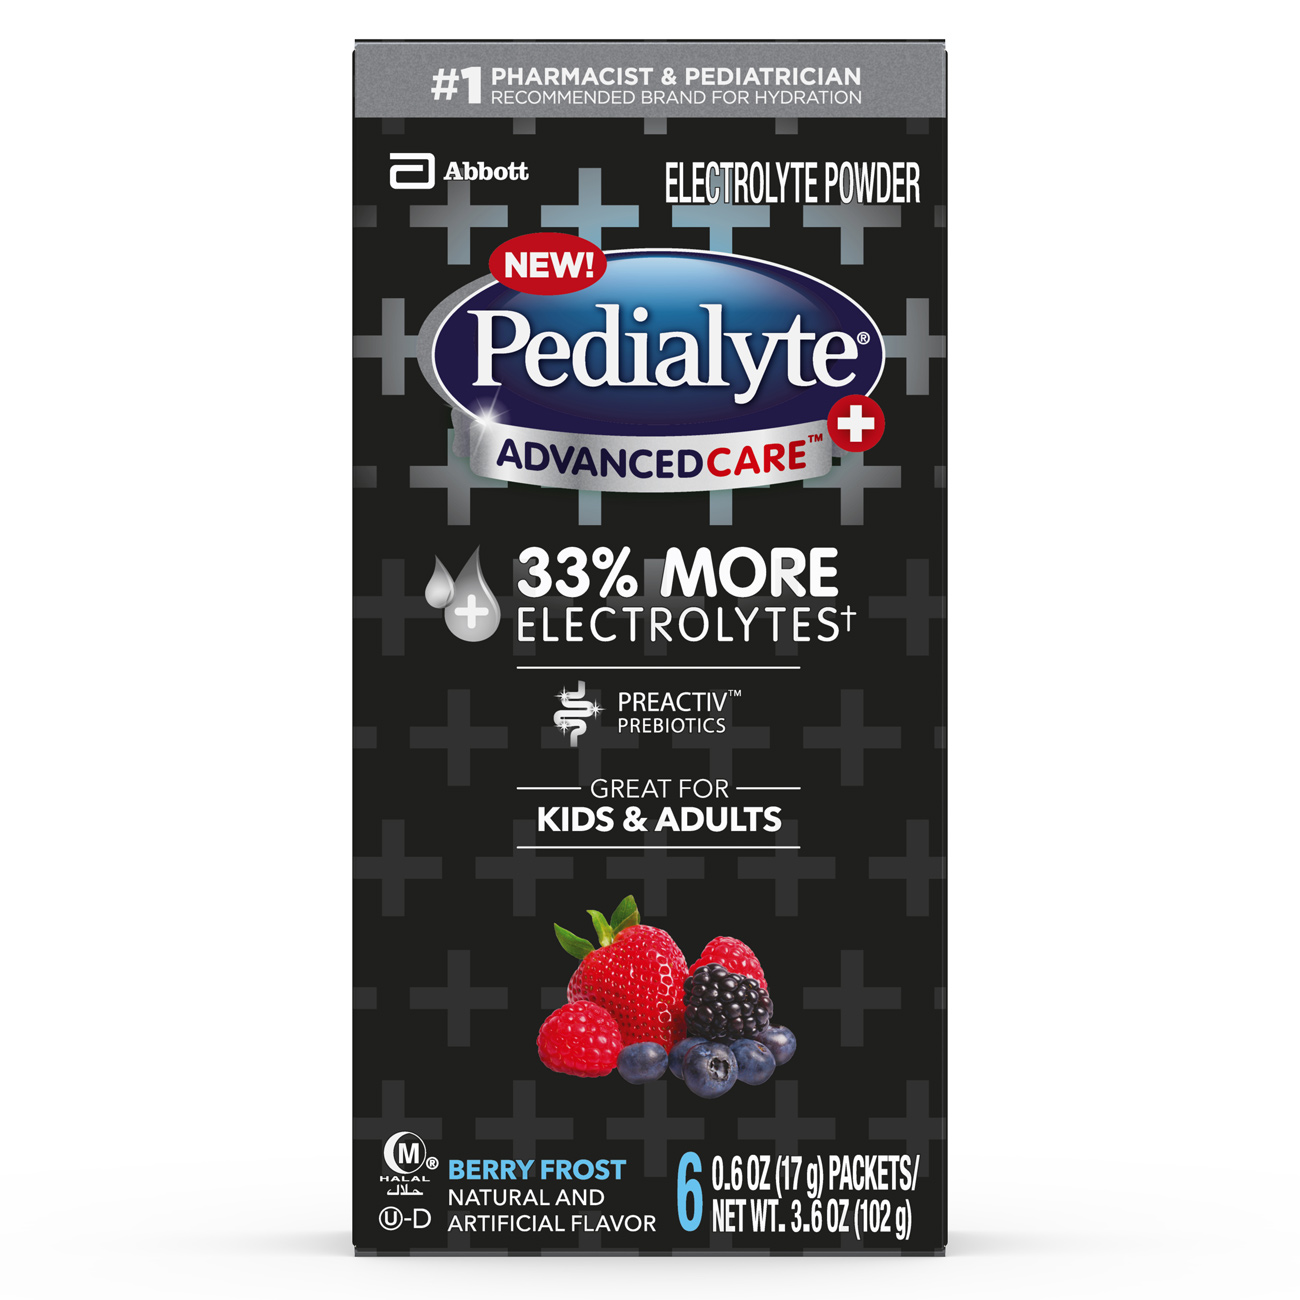 Pedialyte AdvancedCare Plus Electrolyte Powder Berry Frost 0.6 oz Powder Packs (Pack of 36)